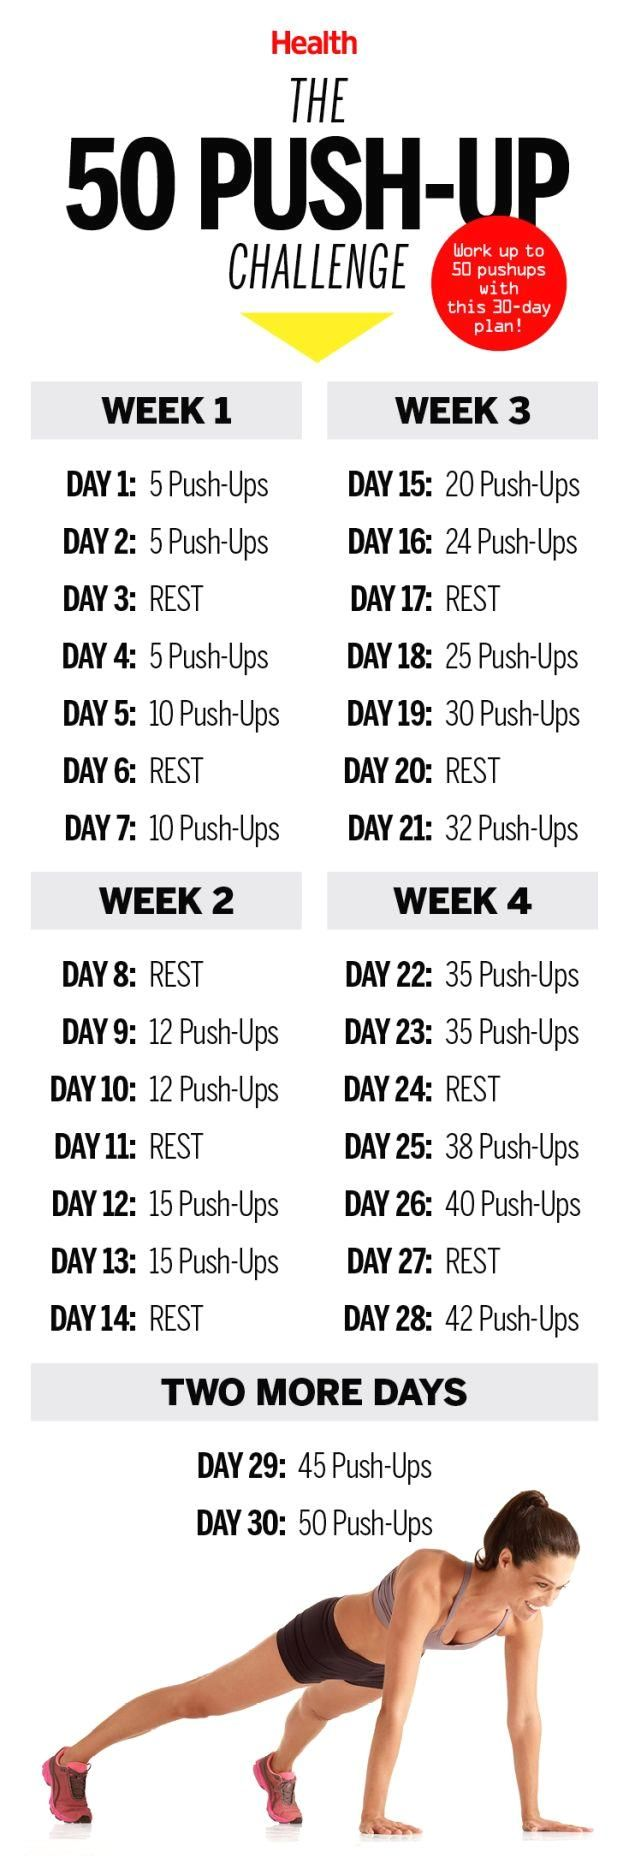 Da fare  Health and fitness  Pinterest  Exercise challenges